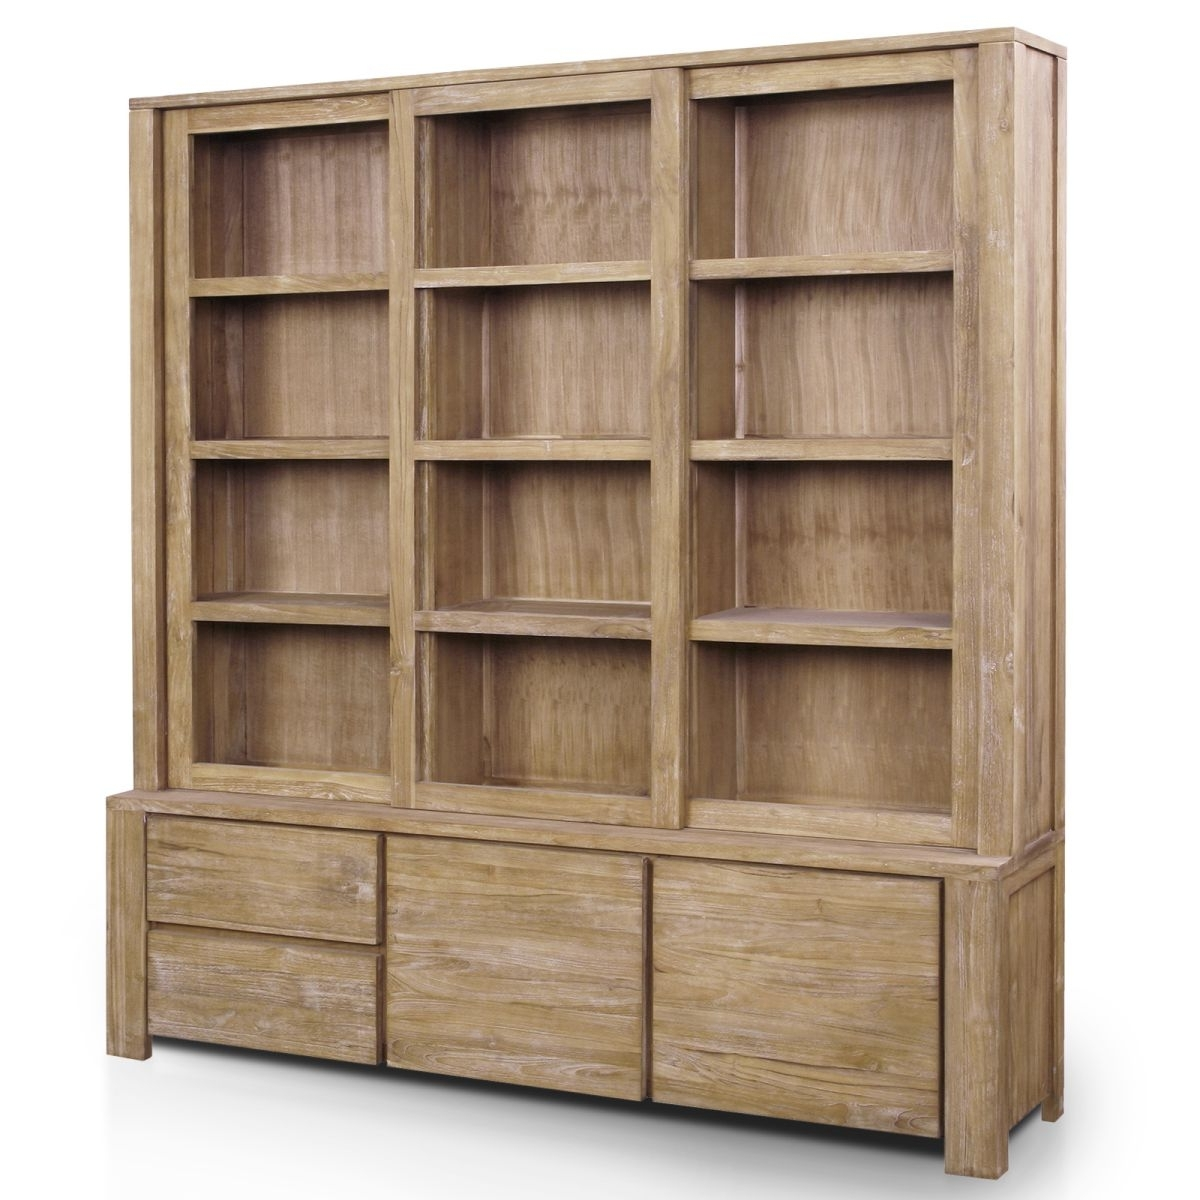 Traditional Bookcases In Best And Newest Traditional Bookcases With Doors : Doherty House – Build Bookcases (View 10 of 15)